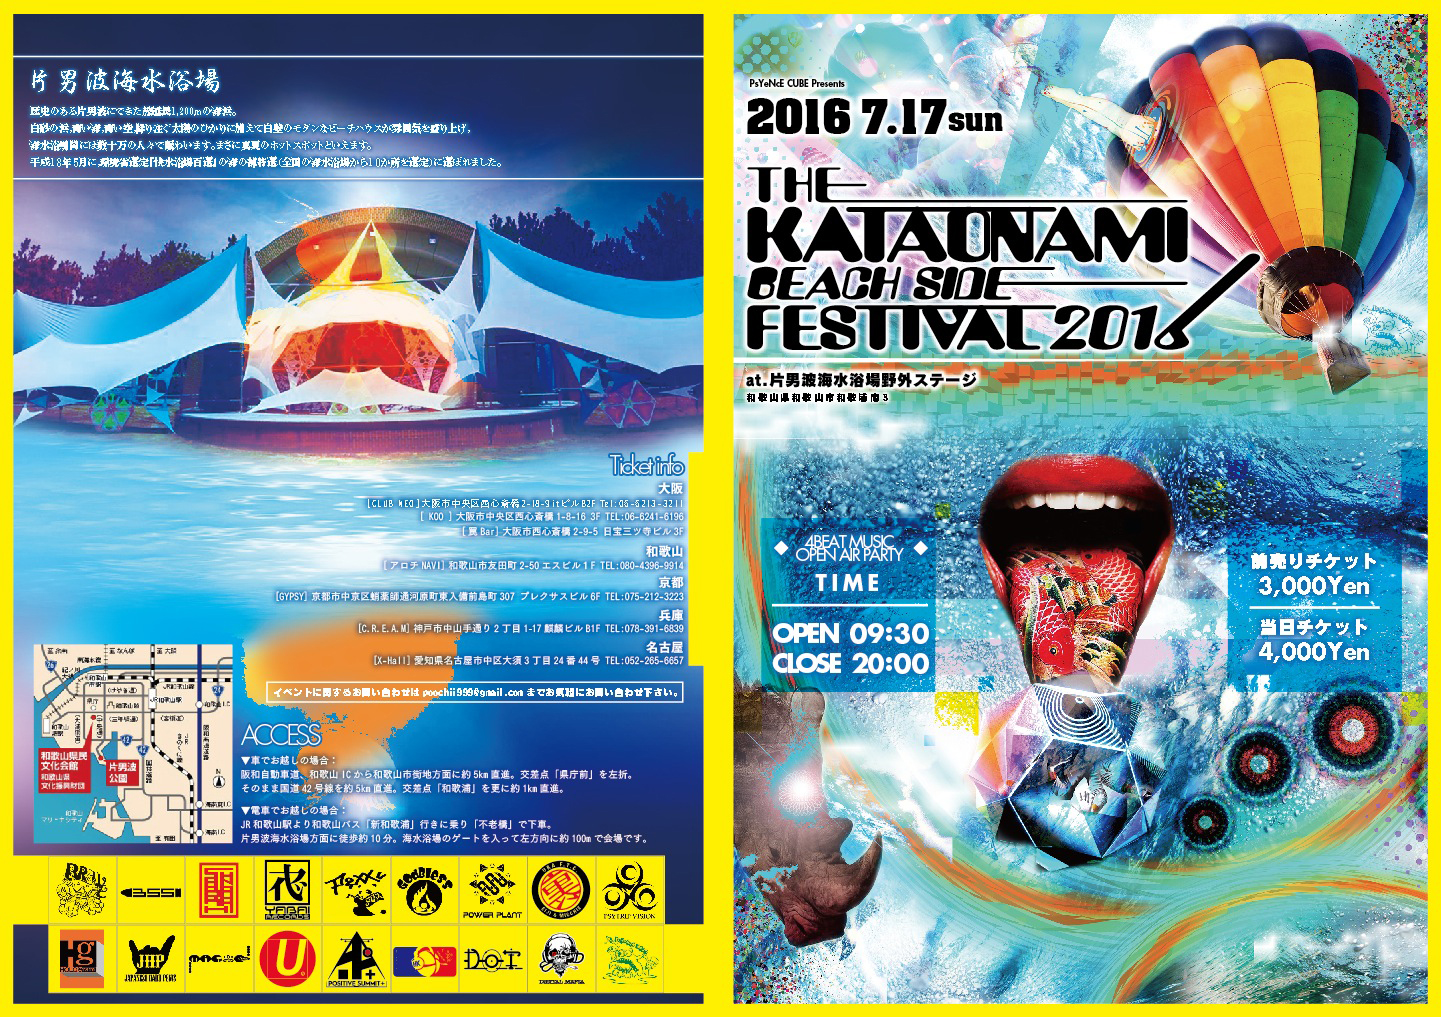 KATAONAMI BEACH SIDE FESTIVAL 2016